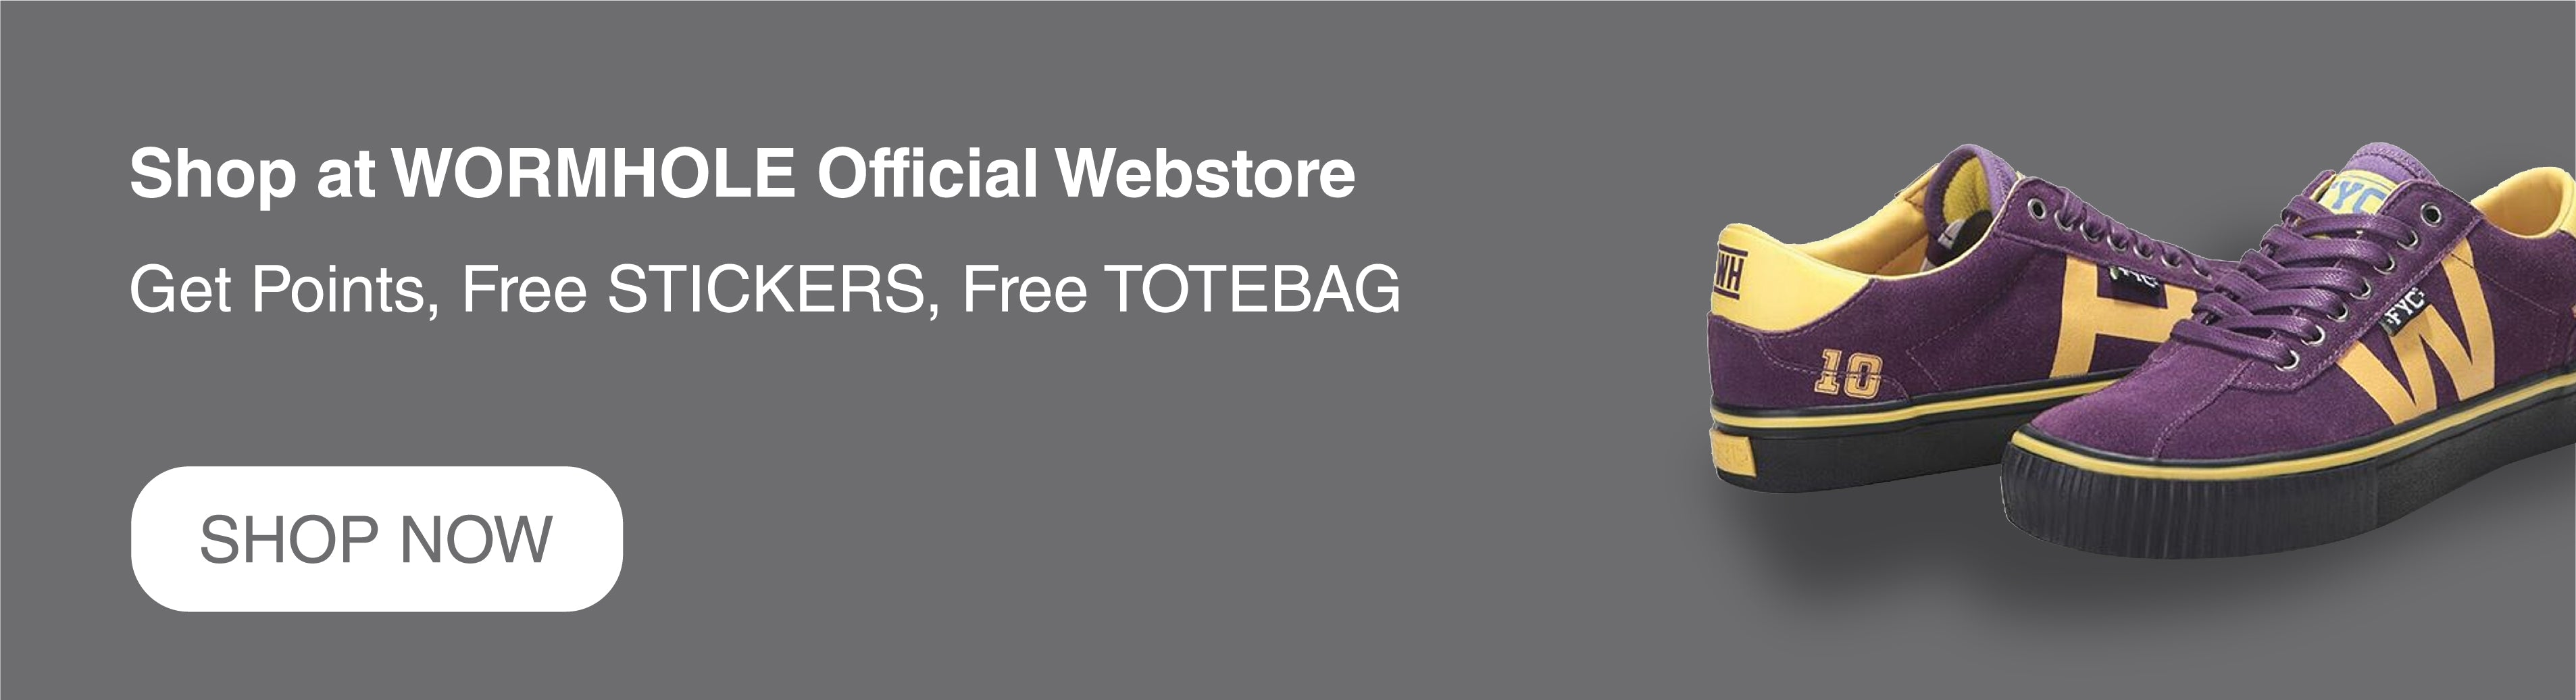 Shop At Wormhole Website